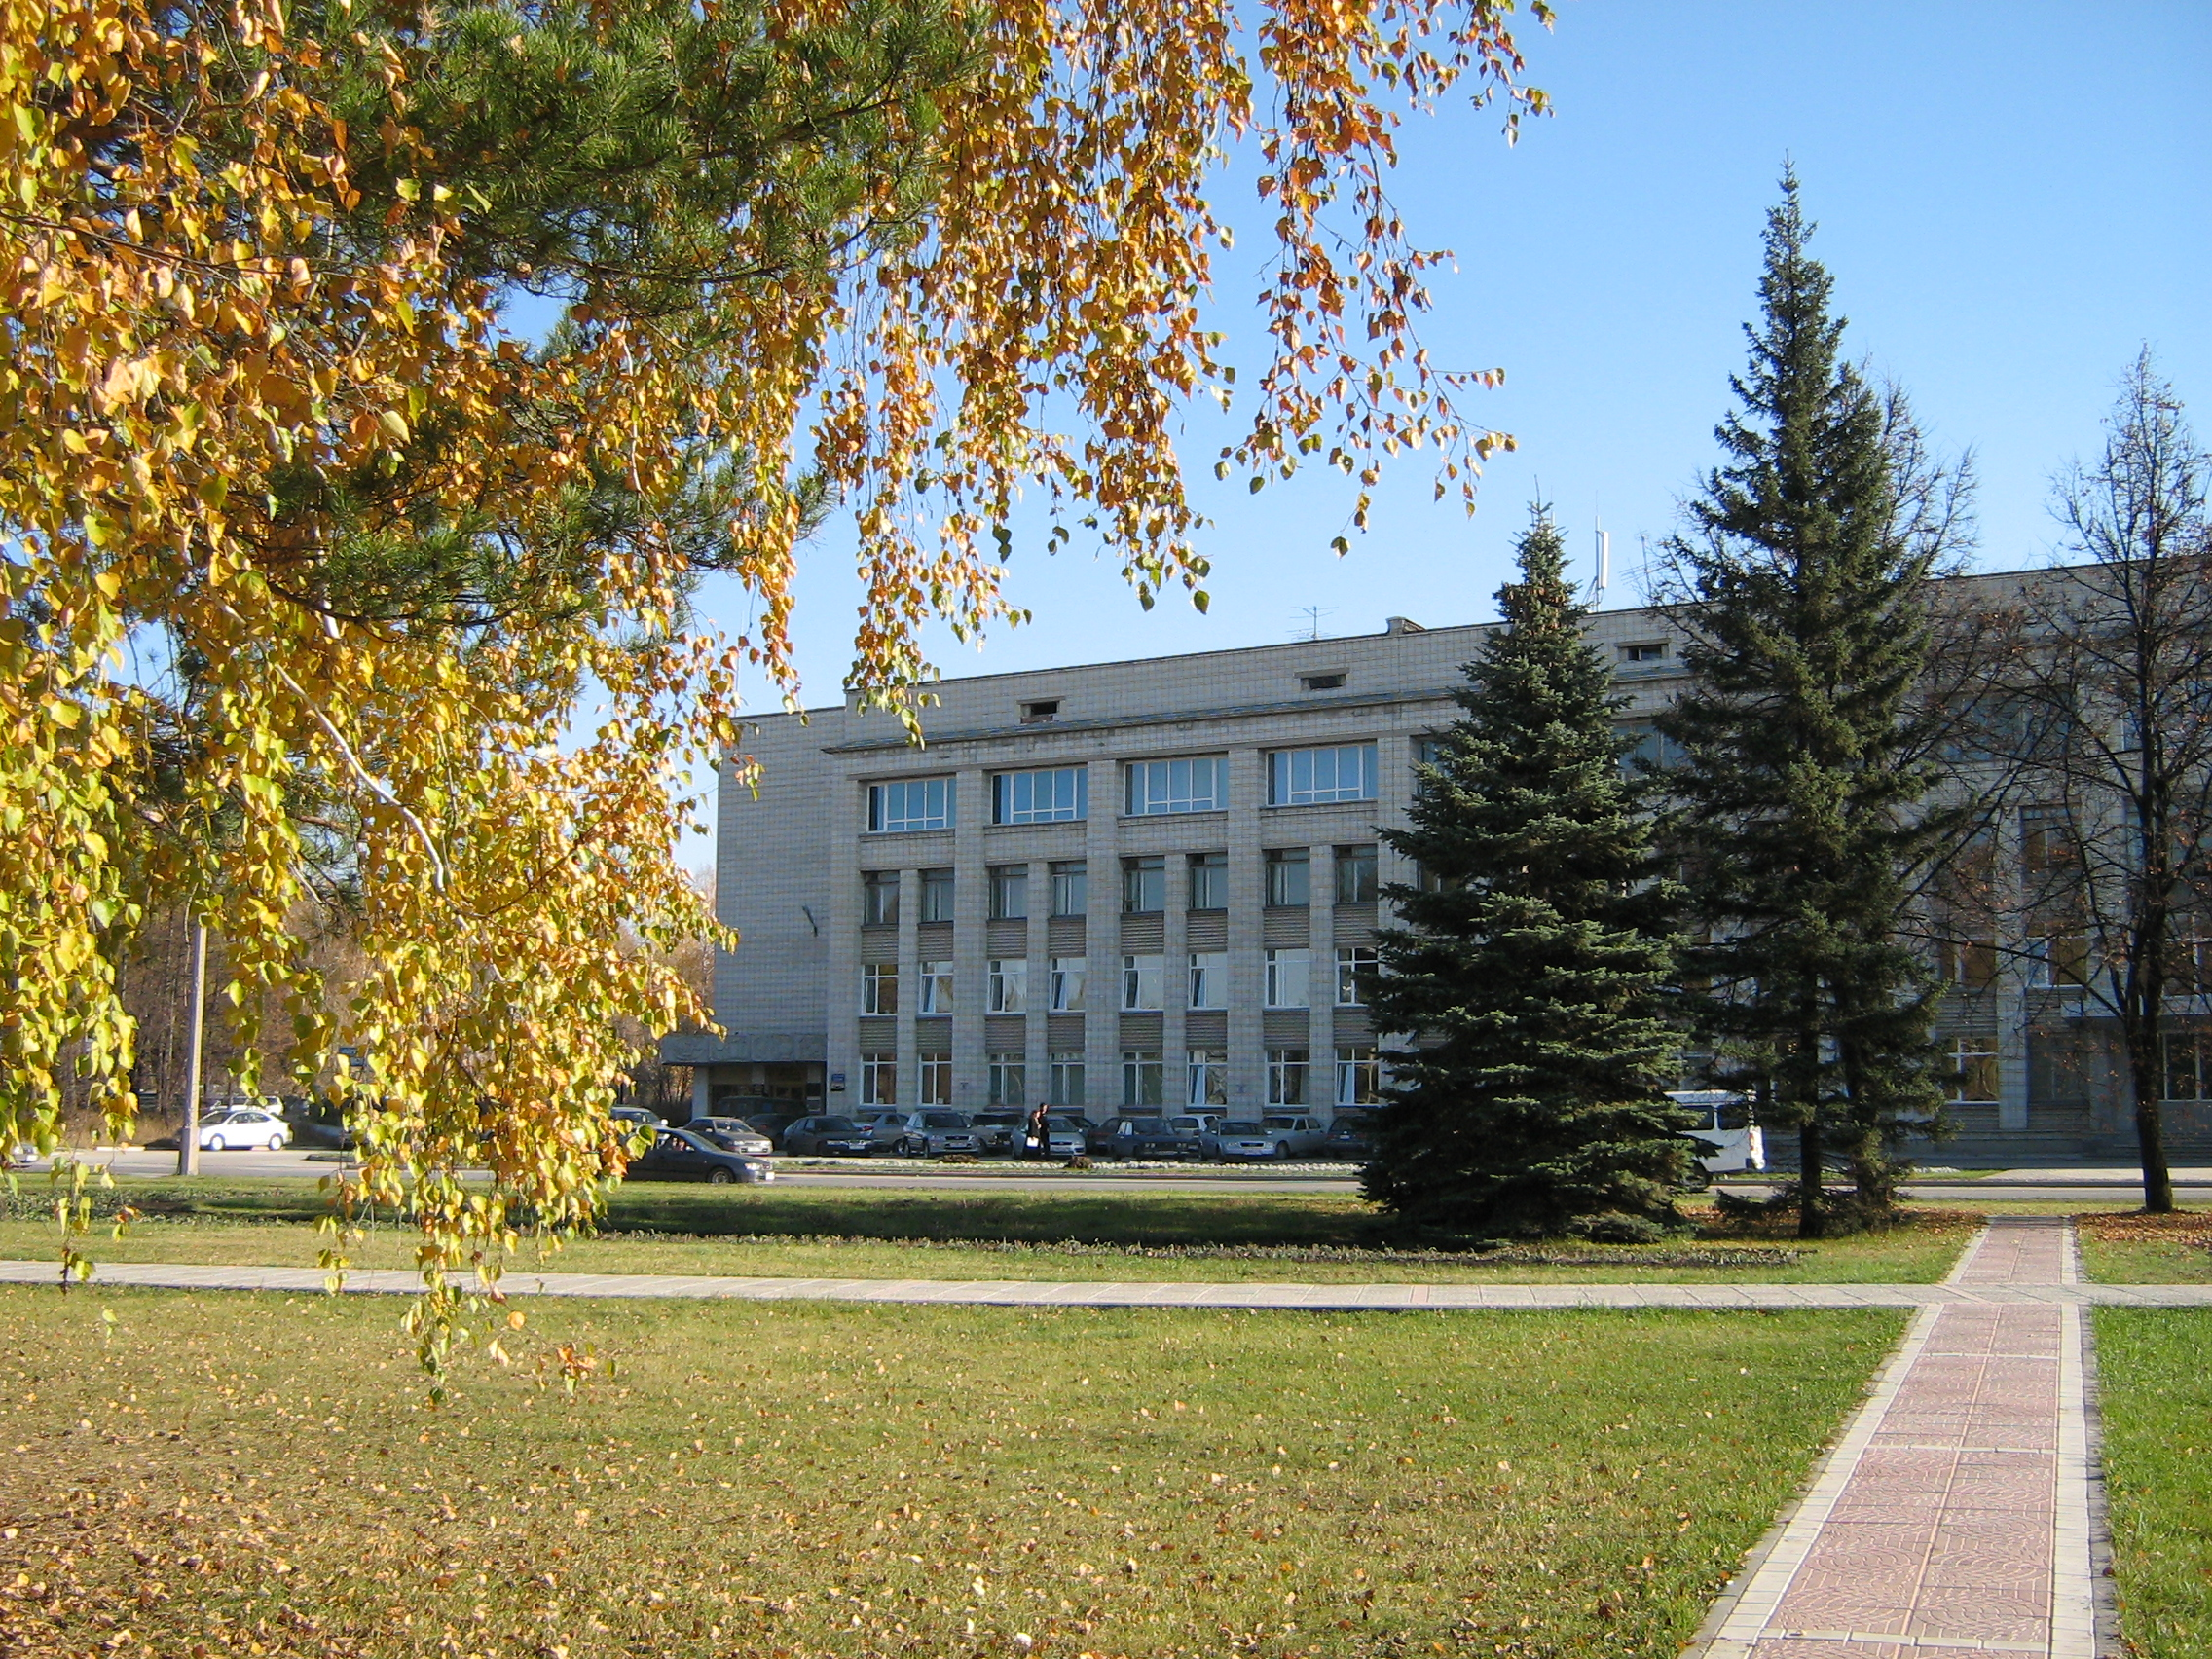 Autumn in Akademgorodok. Economics Institute